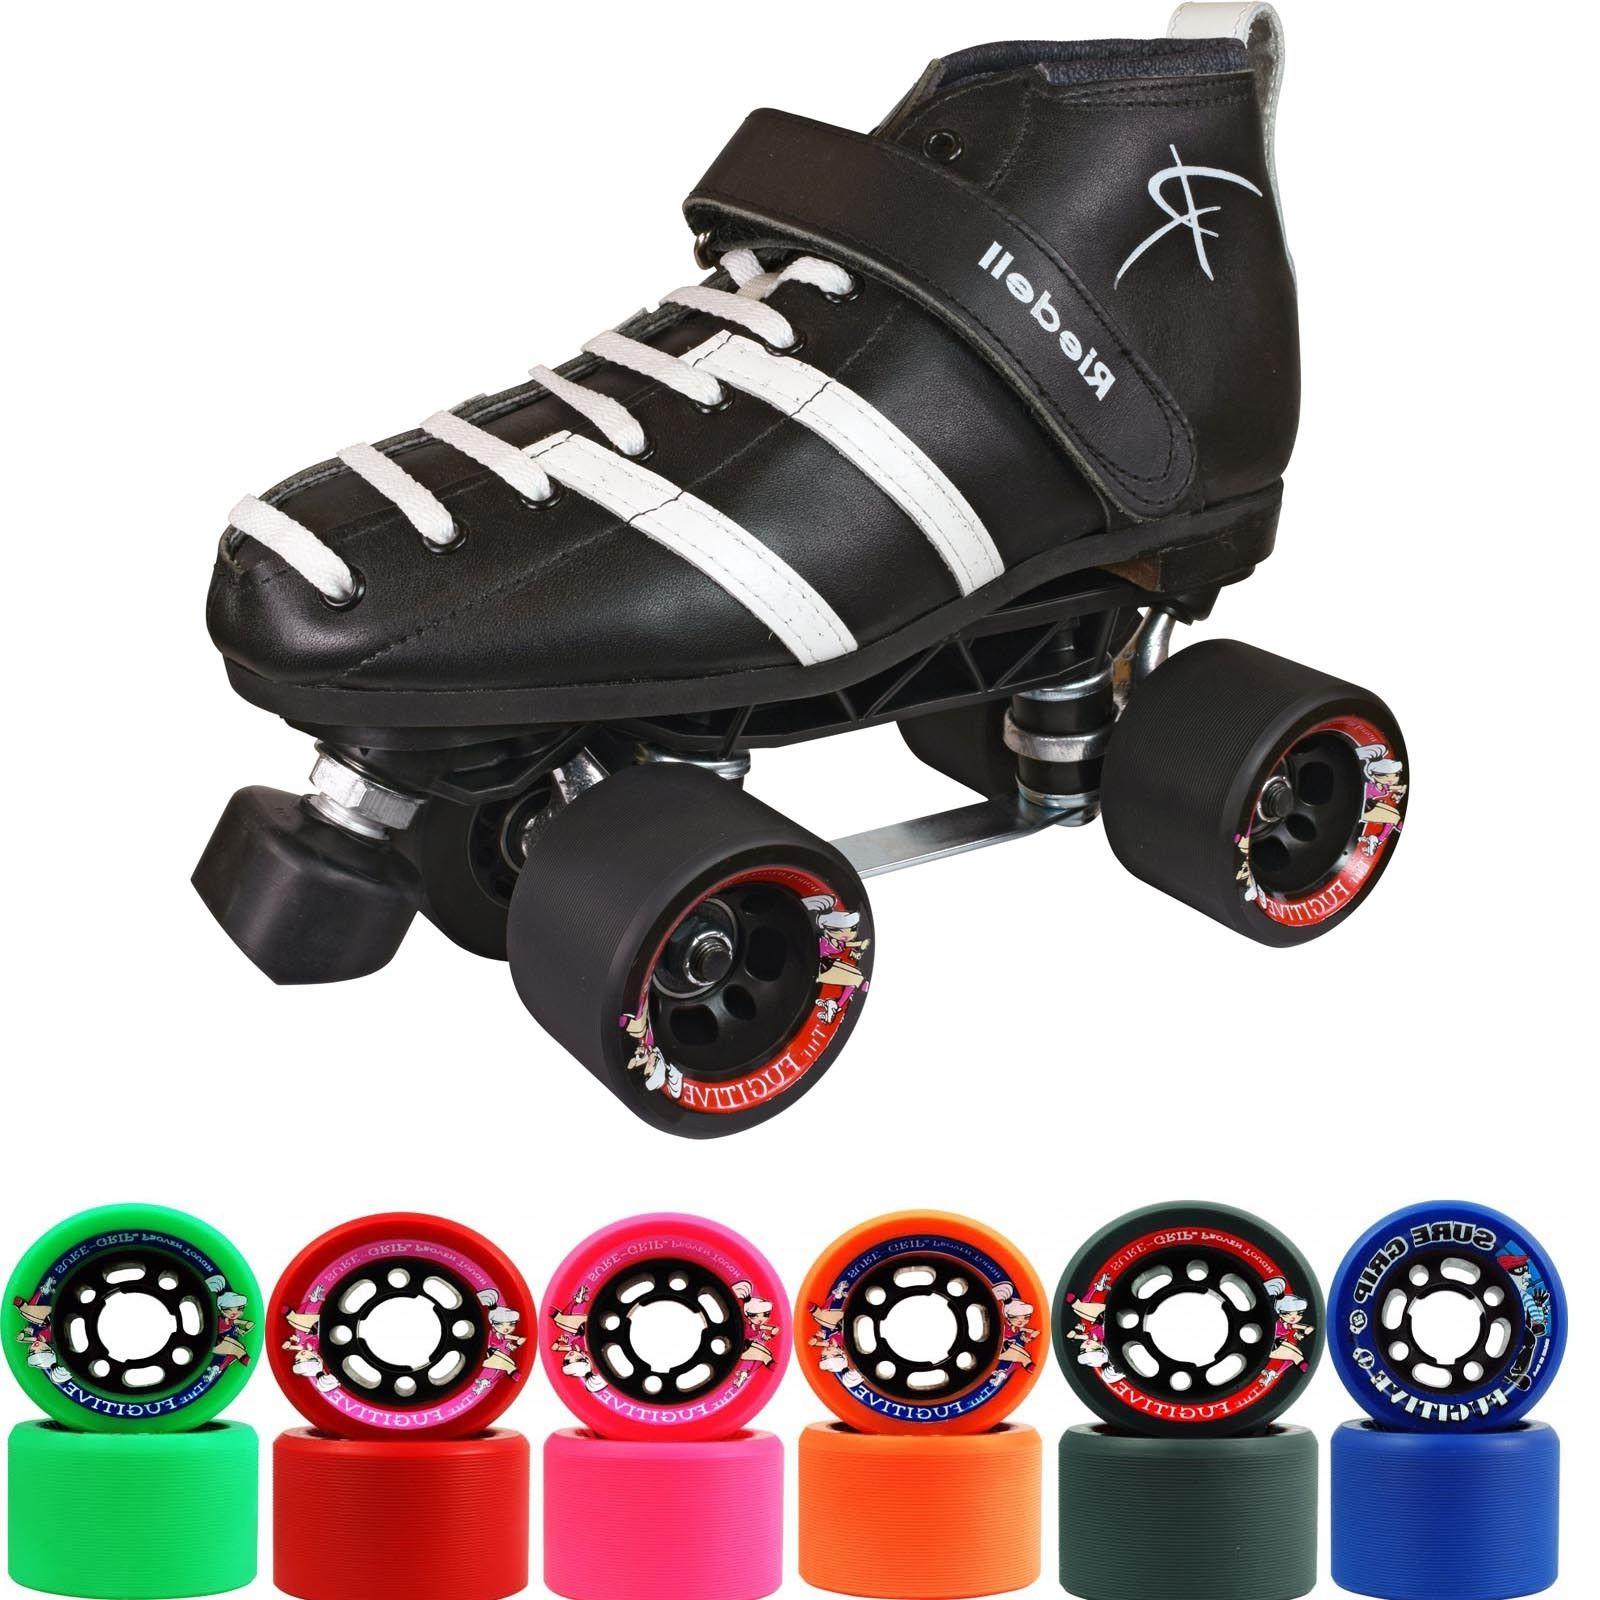 265 sunlite fugitive roller derby skates men